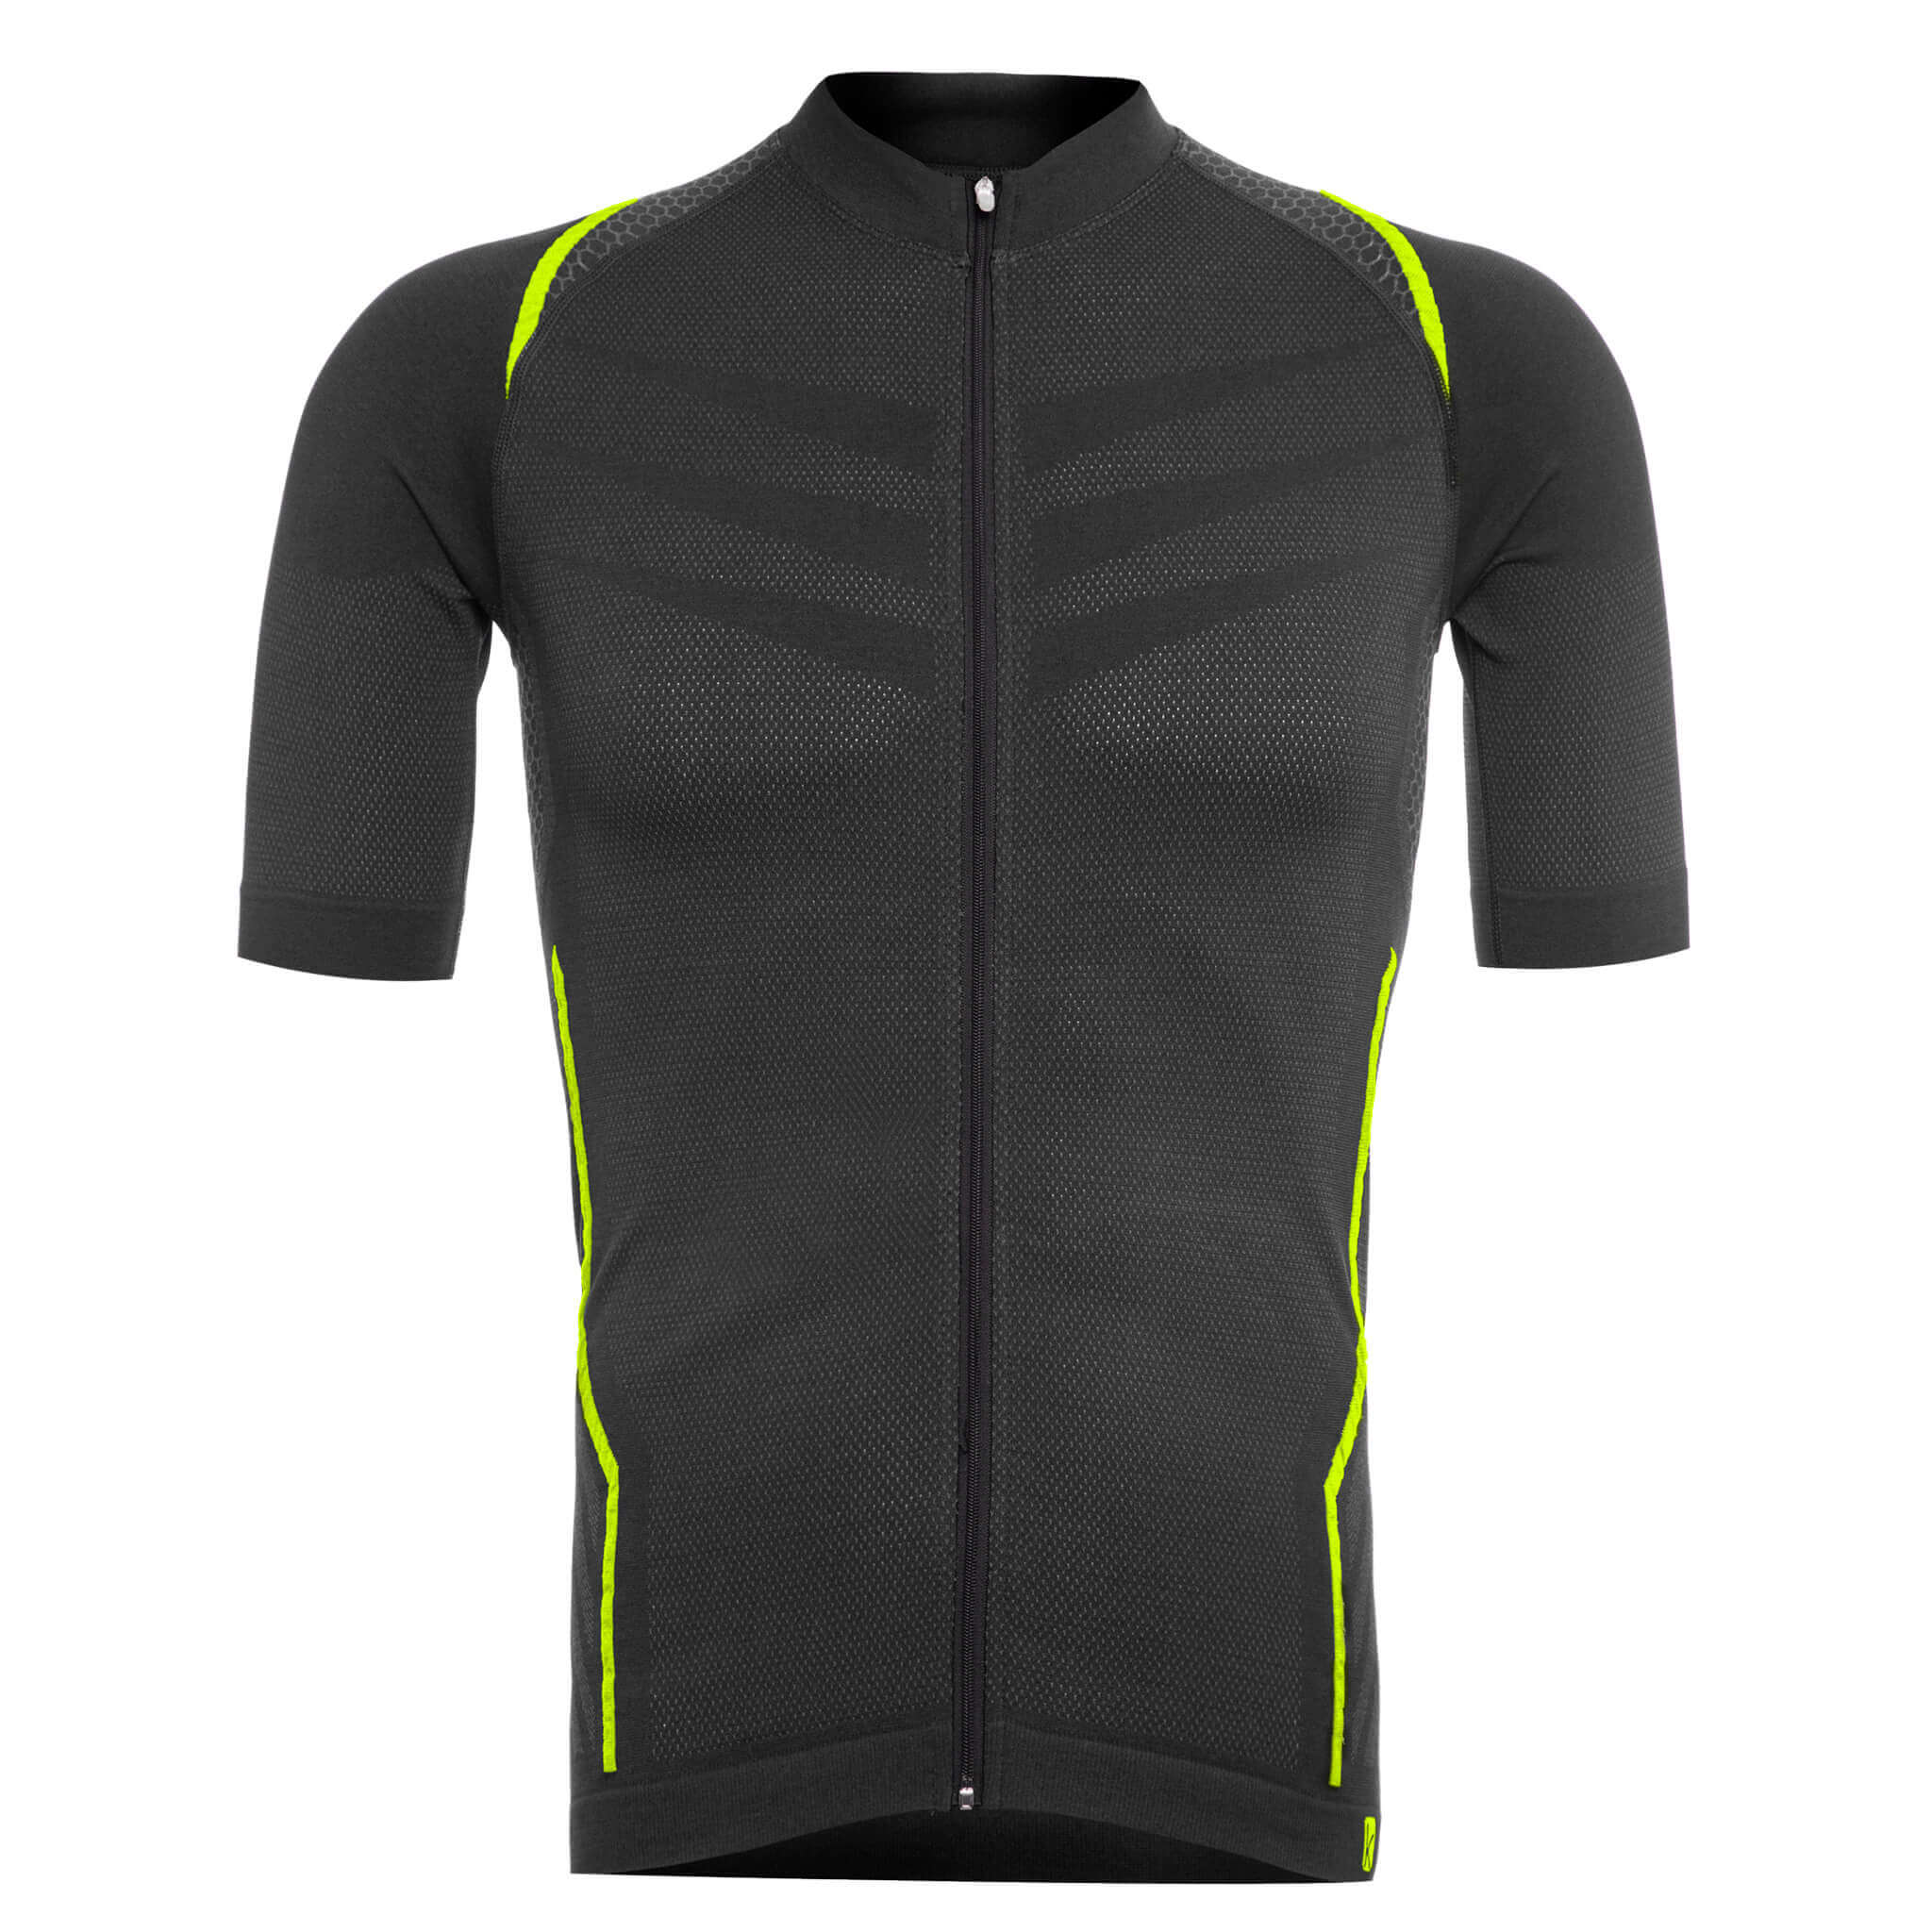 fba9fde61 Funkier - High performance cycling apparel at an affordable price.